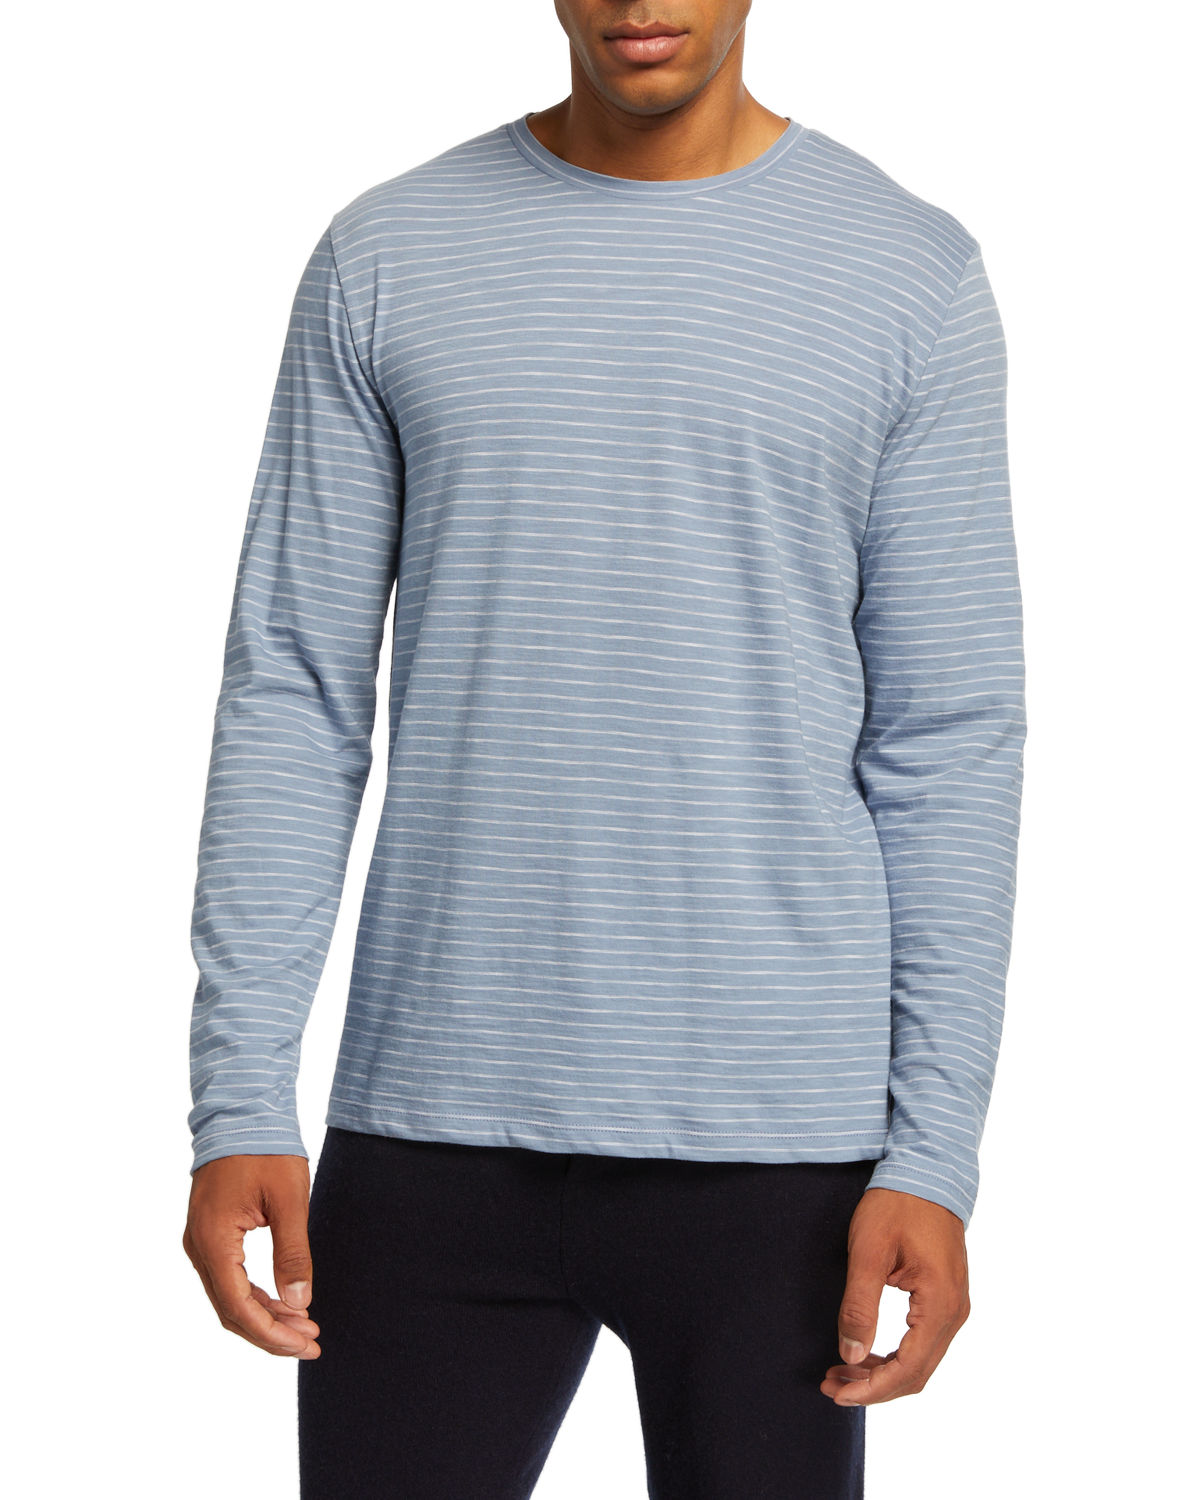 Vince T-shirts MEN'S STRIPED LONG-SLEEVE SLUB JERSEY CREWNECK T-SHIRT